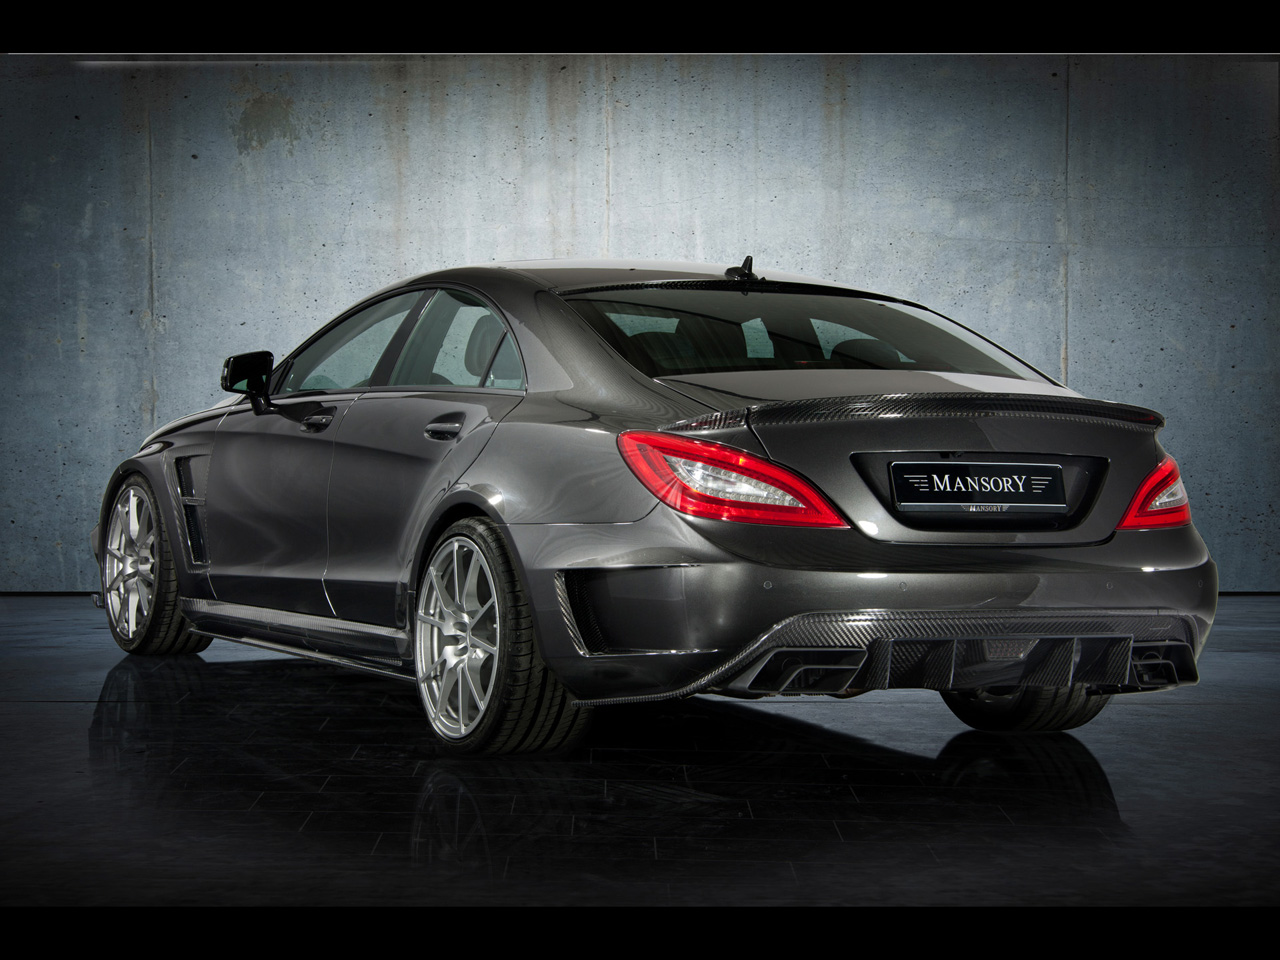 2012 Mansory Mercedes Benz CLS 63 AMG 2